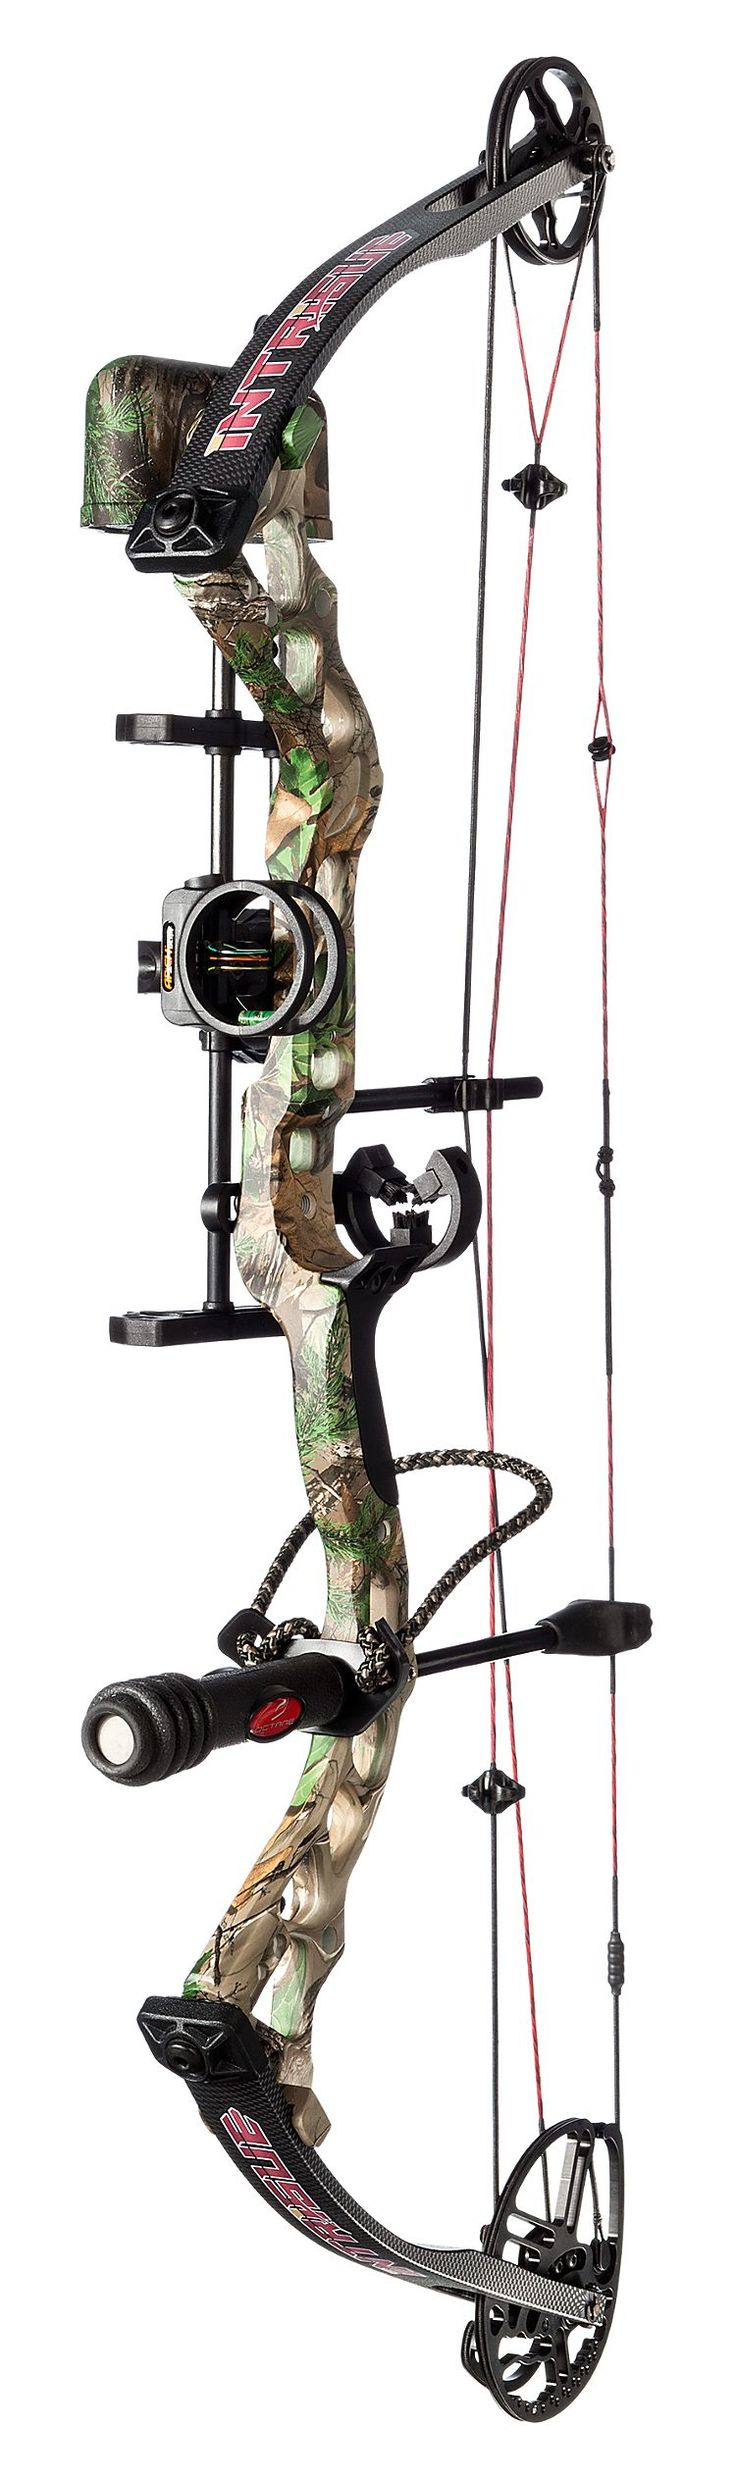 BlackOut Intrigue Compound Bow Package | Bass Pro Shops #bowhunting #compoundbow